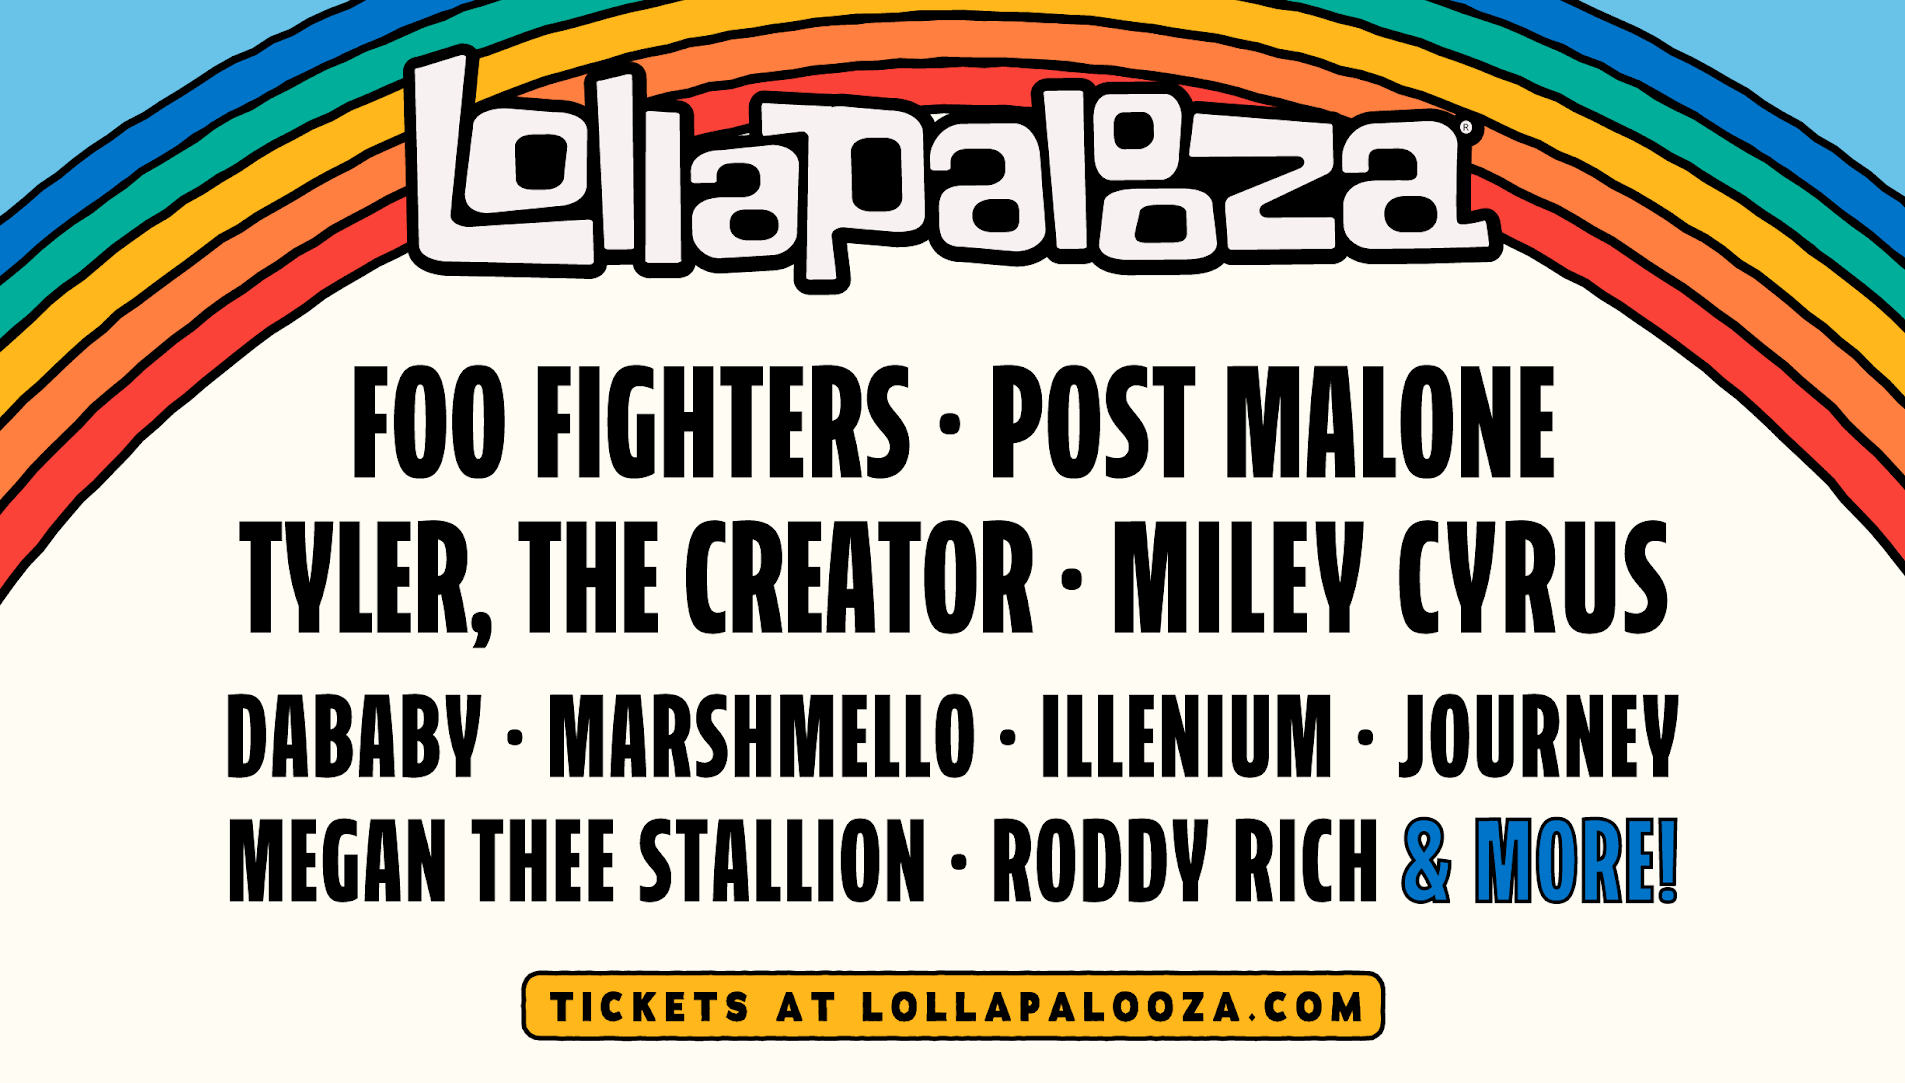 Lollapalooza single-day lineups are here!